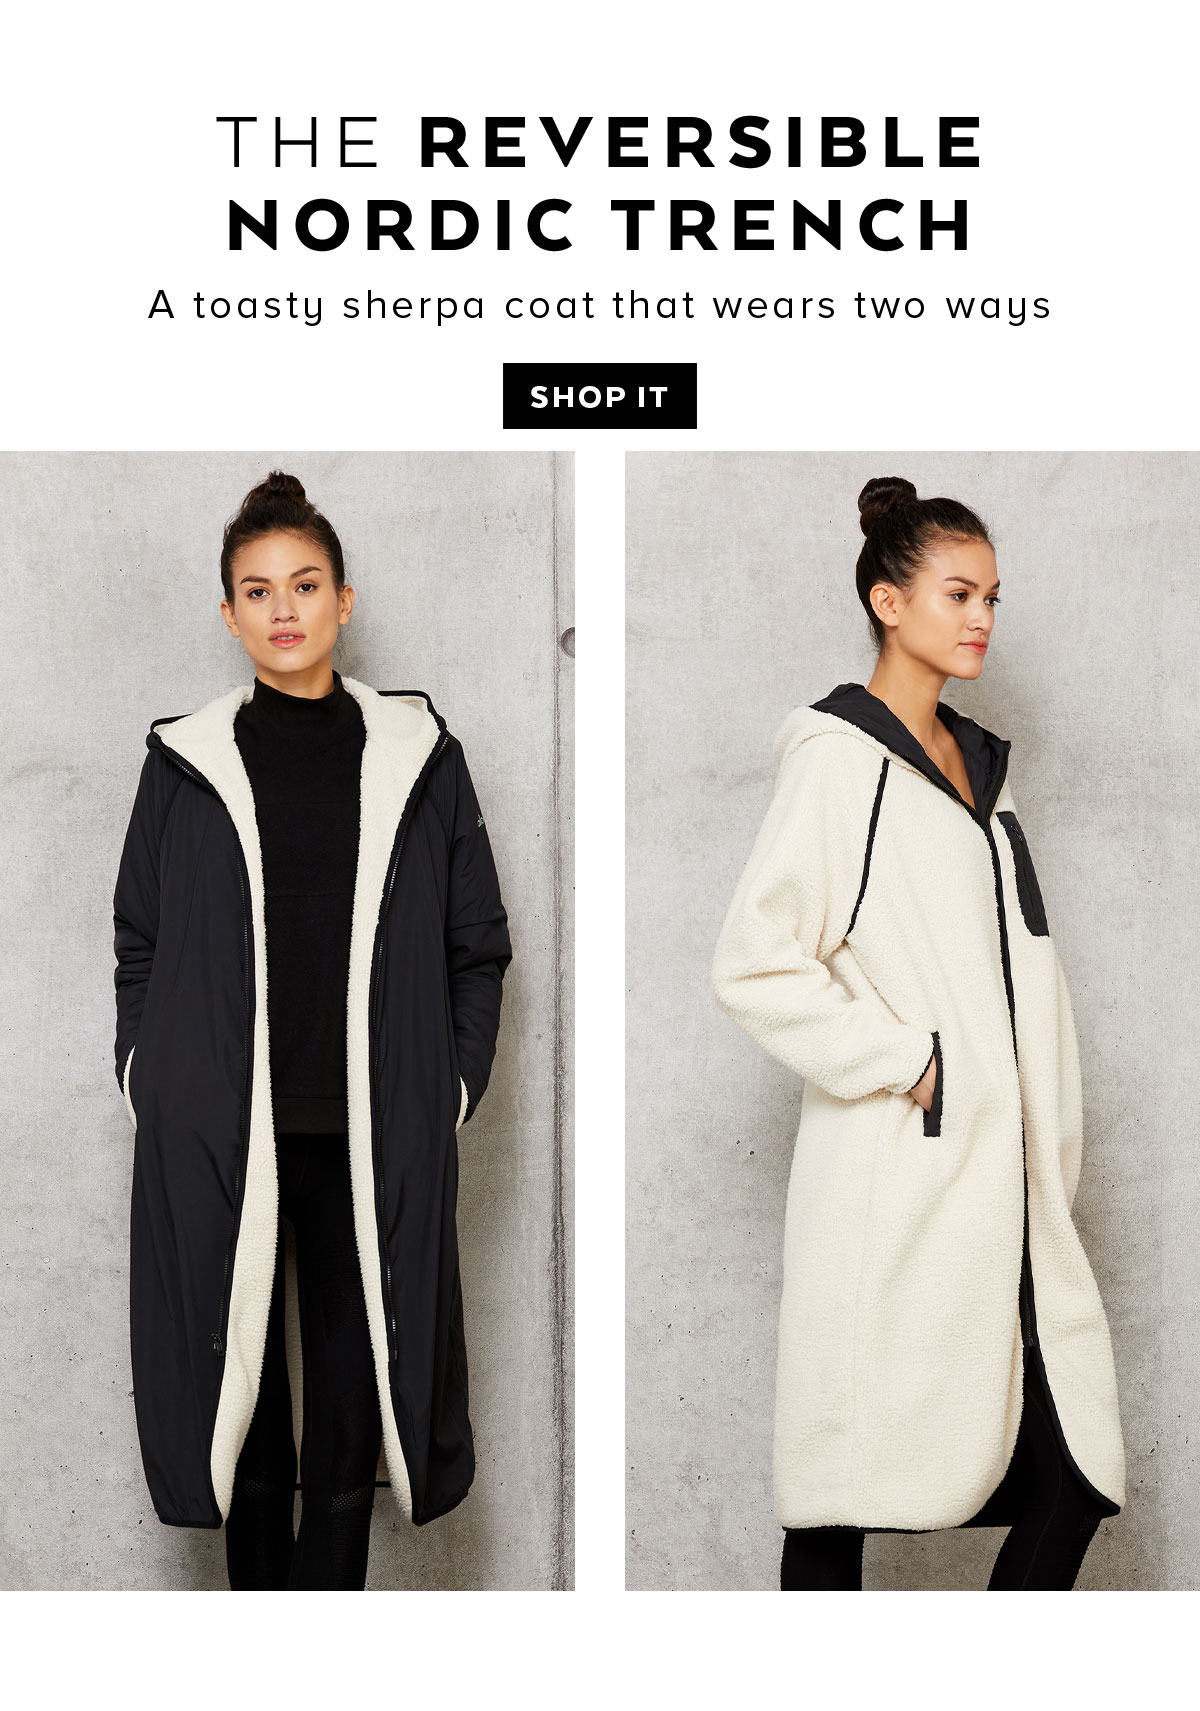 THE REVERSIBLE NORDIC TRENCH. A toasty sherpa coat that wears two ways. SHOP IT